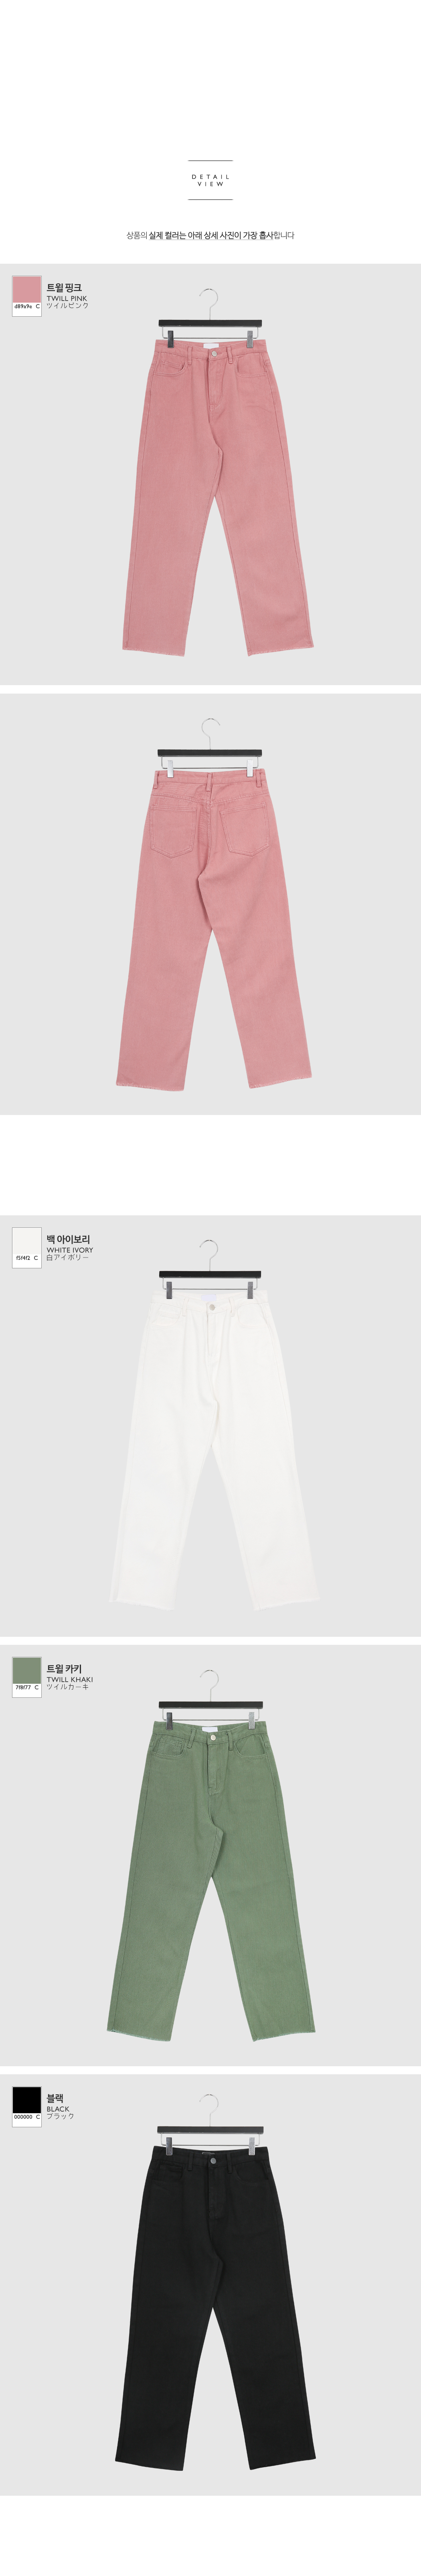 Cut colored straight pants